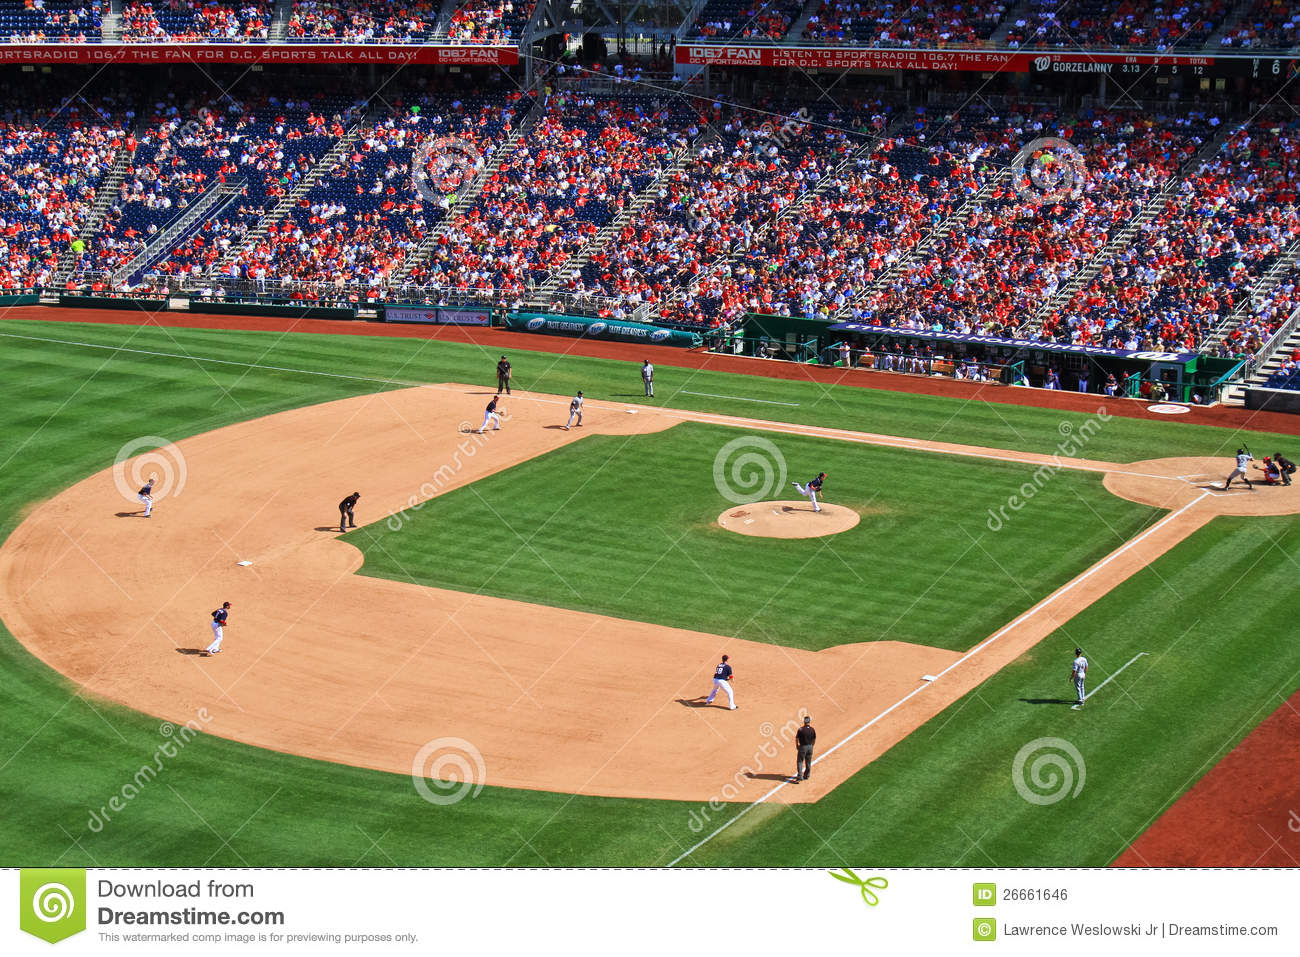 an analysis of baseball in american game Analysis of baseball by may swenson it's about ball fits the ball, mitt, but the  bat, not all and the mitt the time ball hits sometimes bat, or it ball gets hit.